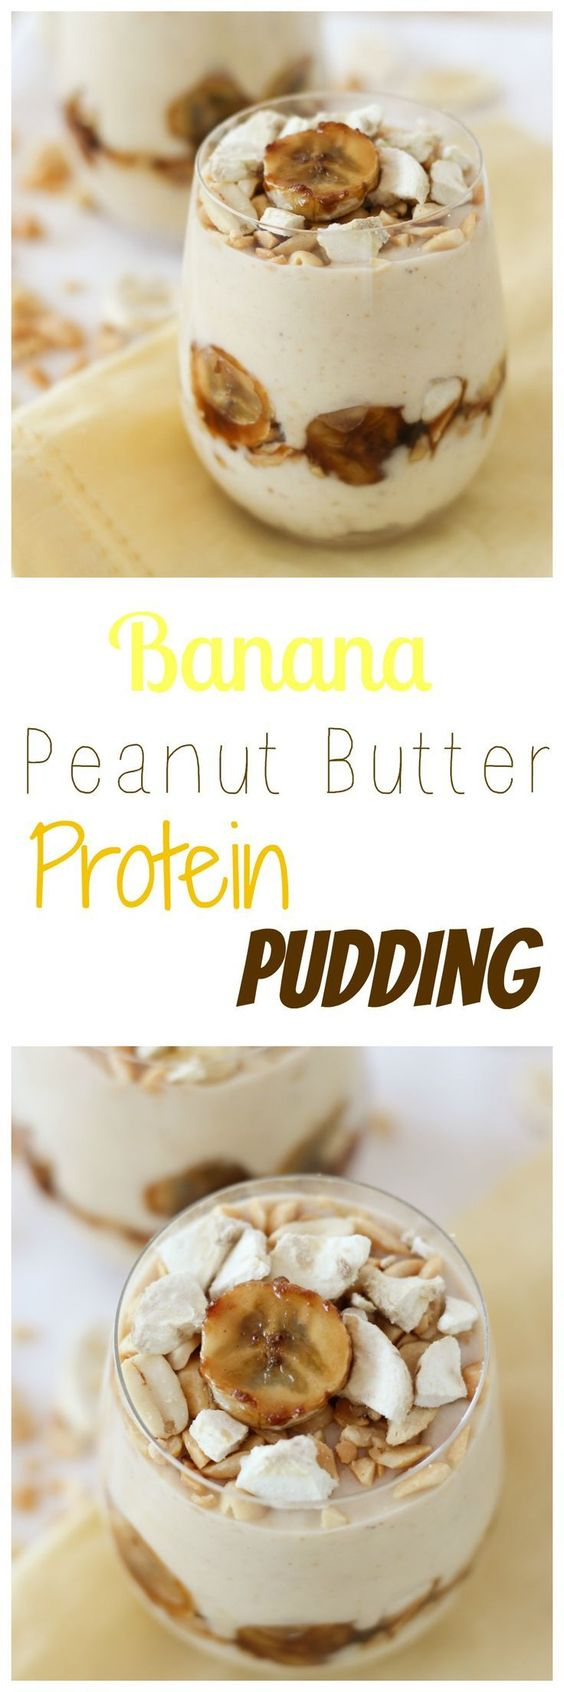 A healthy vegan gluten free protein pudding recipe that's a take on the classic banana pudding with the combination of banana and peanut butter.